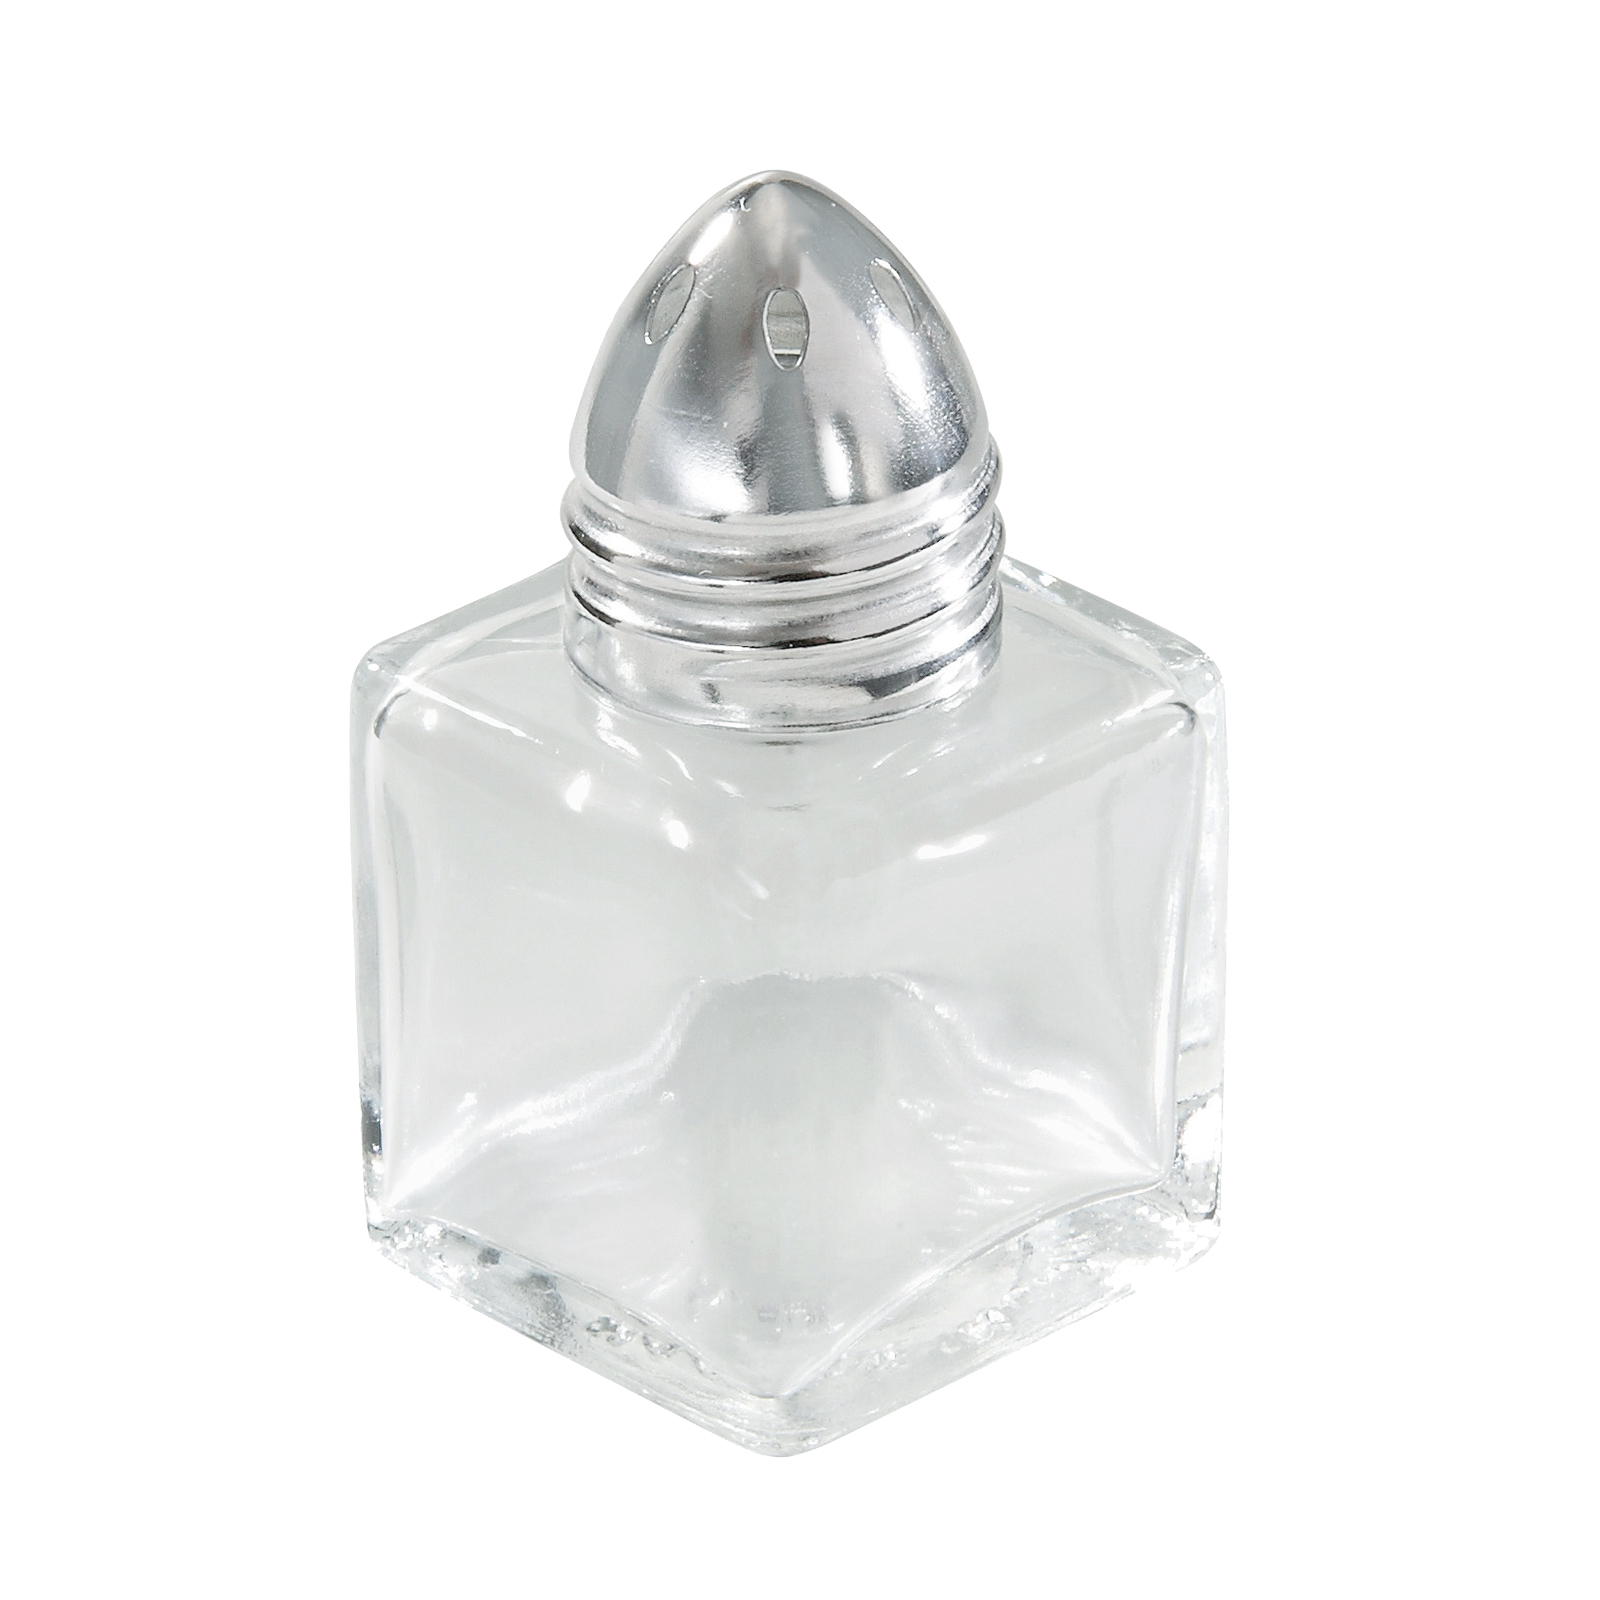 Winco G-100 salt / pepper shaker